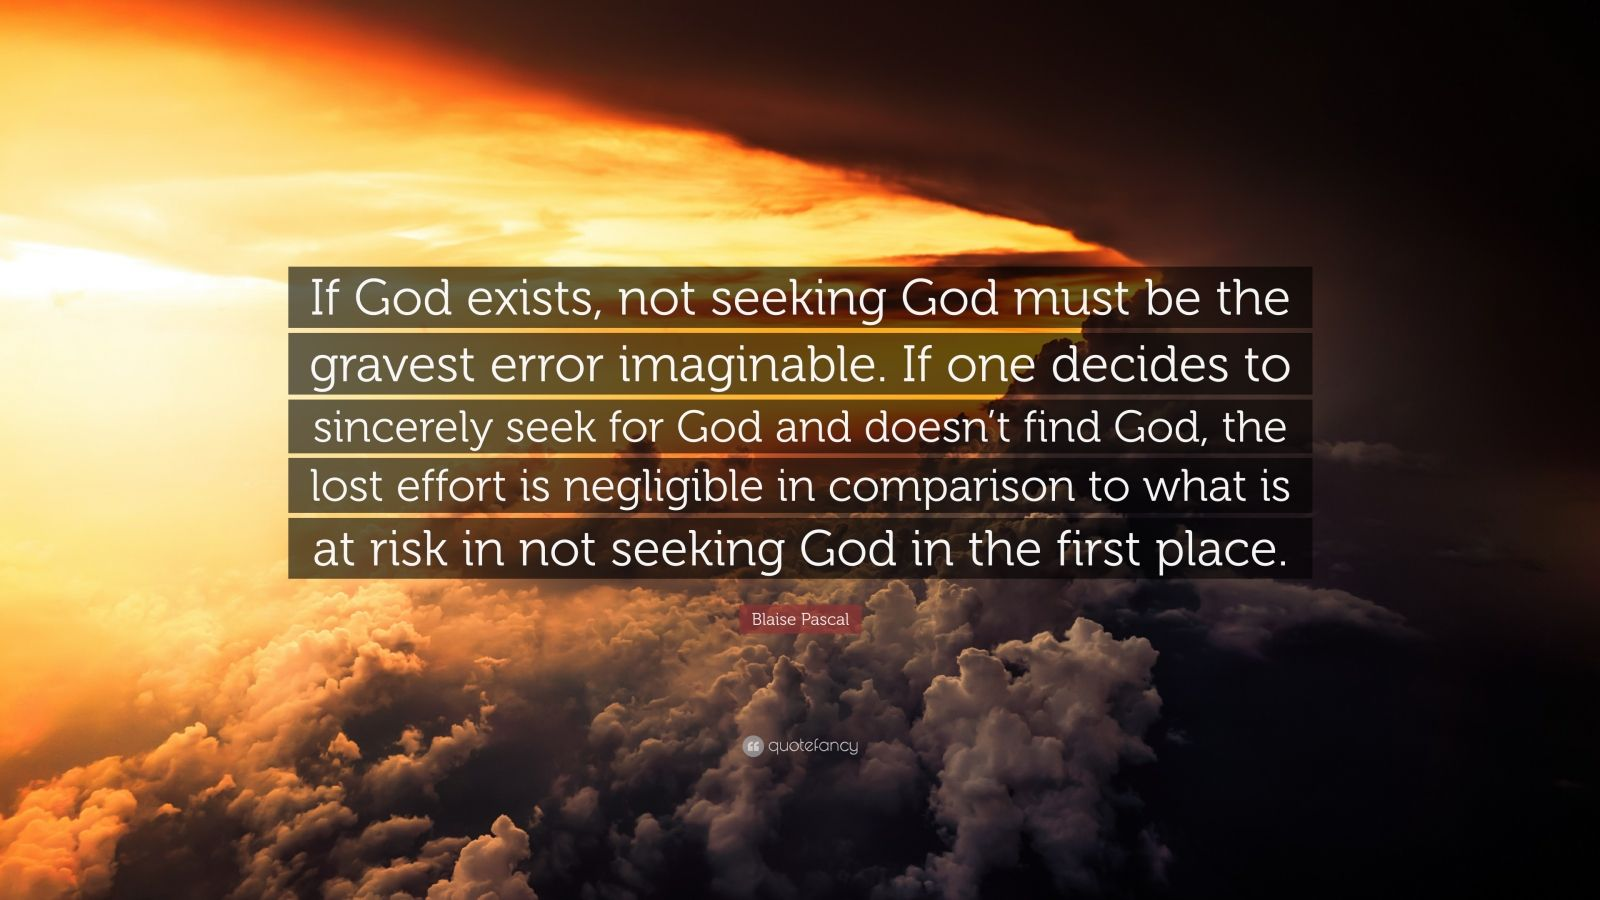 """Blaise Pascal Quote: """"If God exists, not seeking God must be the gravest error imaginable. If one decides to sincerely seek for God and doesn't find God, the lost effort is negligible in comparison to what is at risk in not seeking God in the first place."""""""